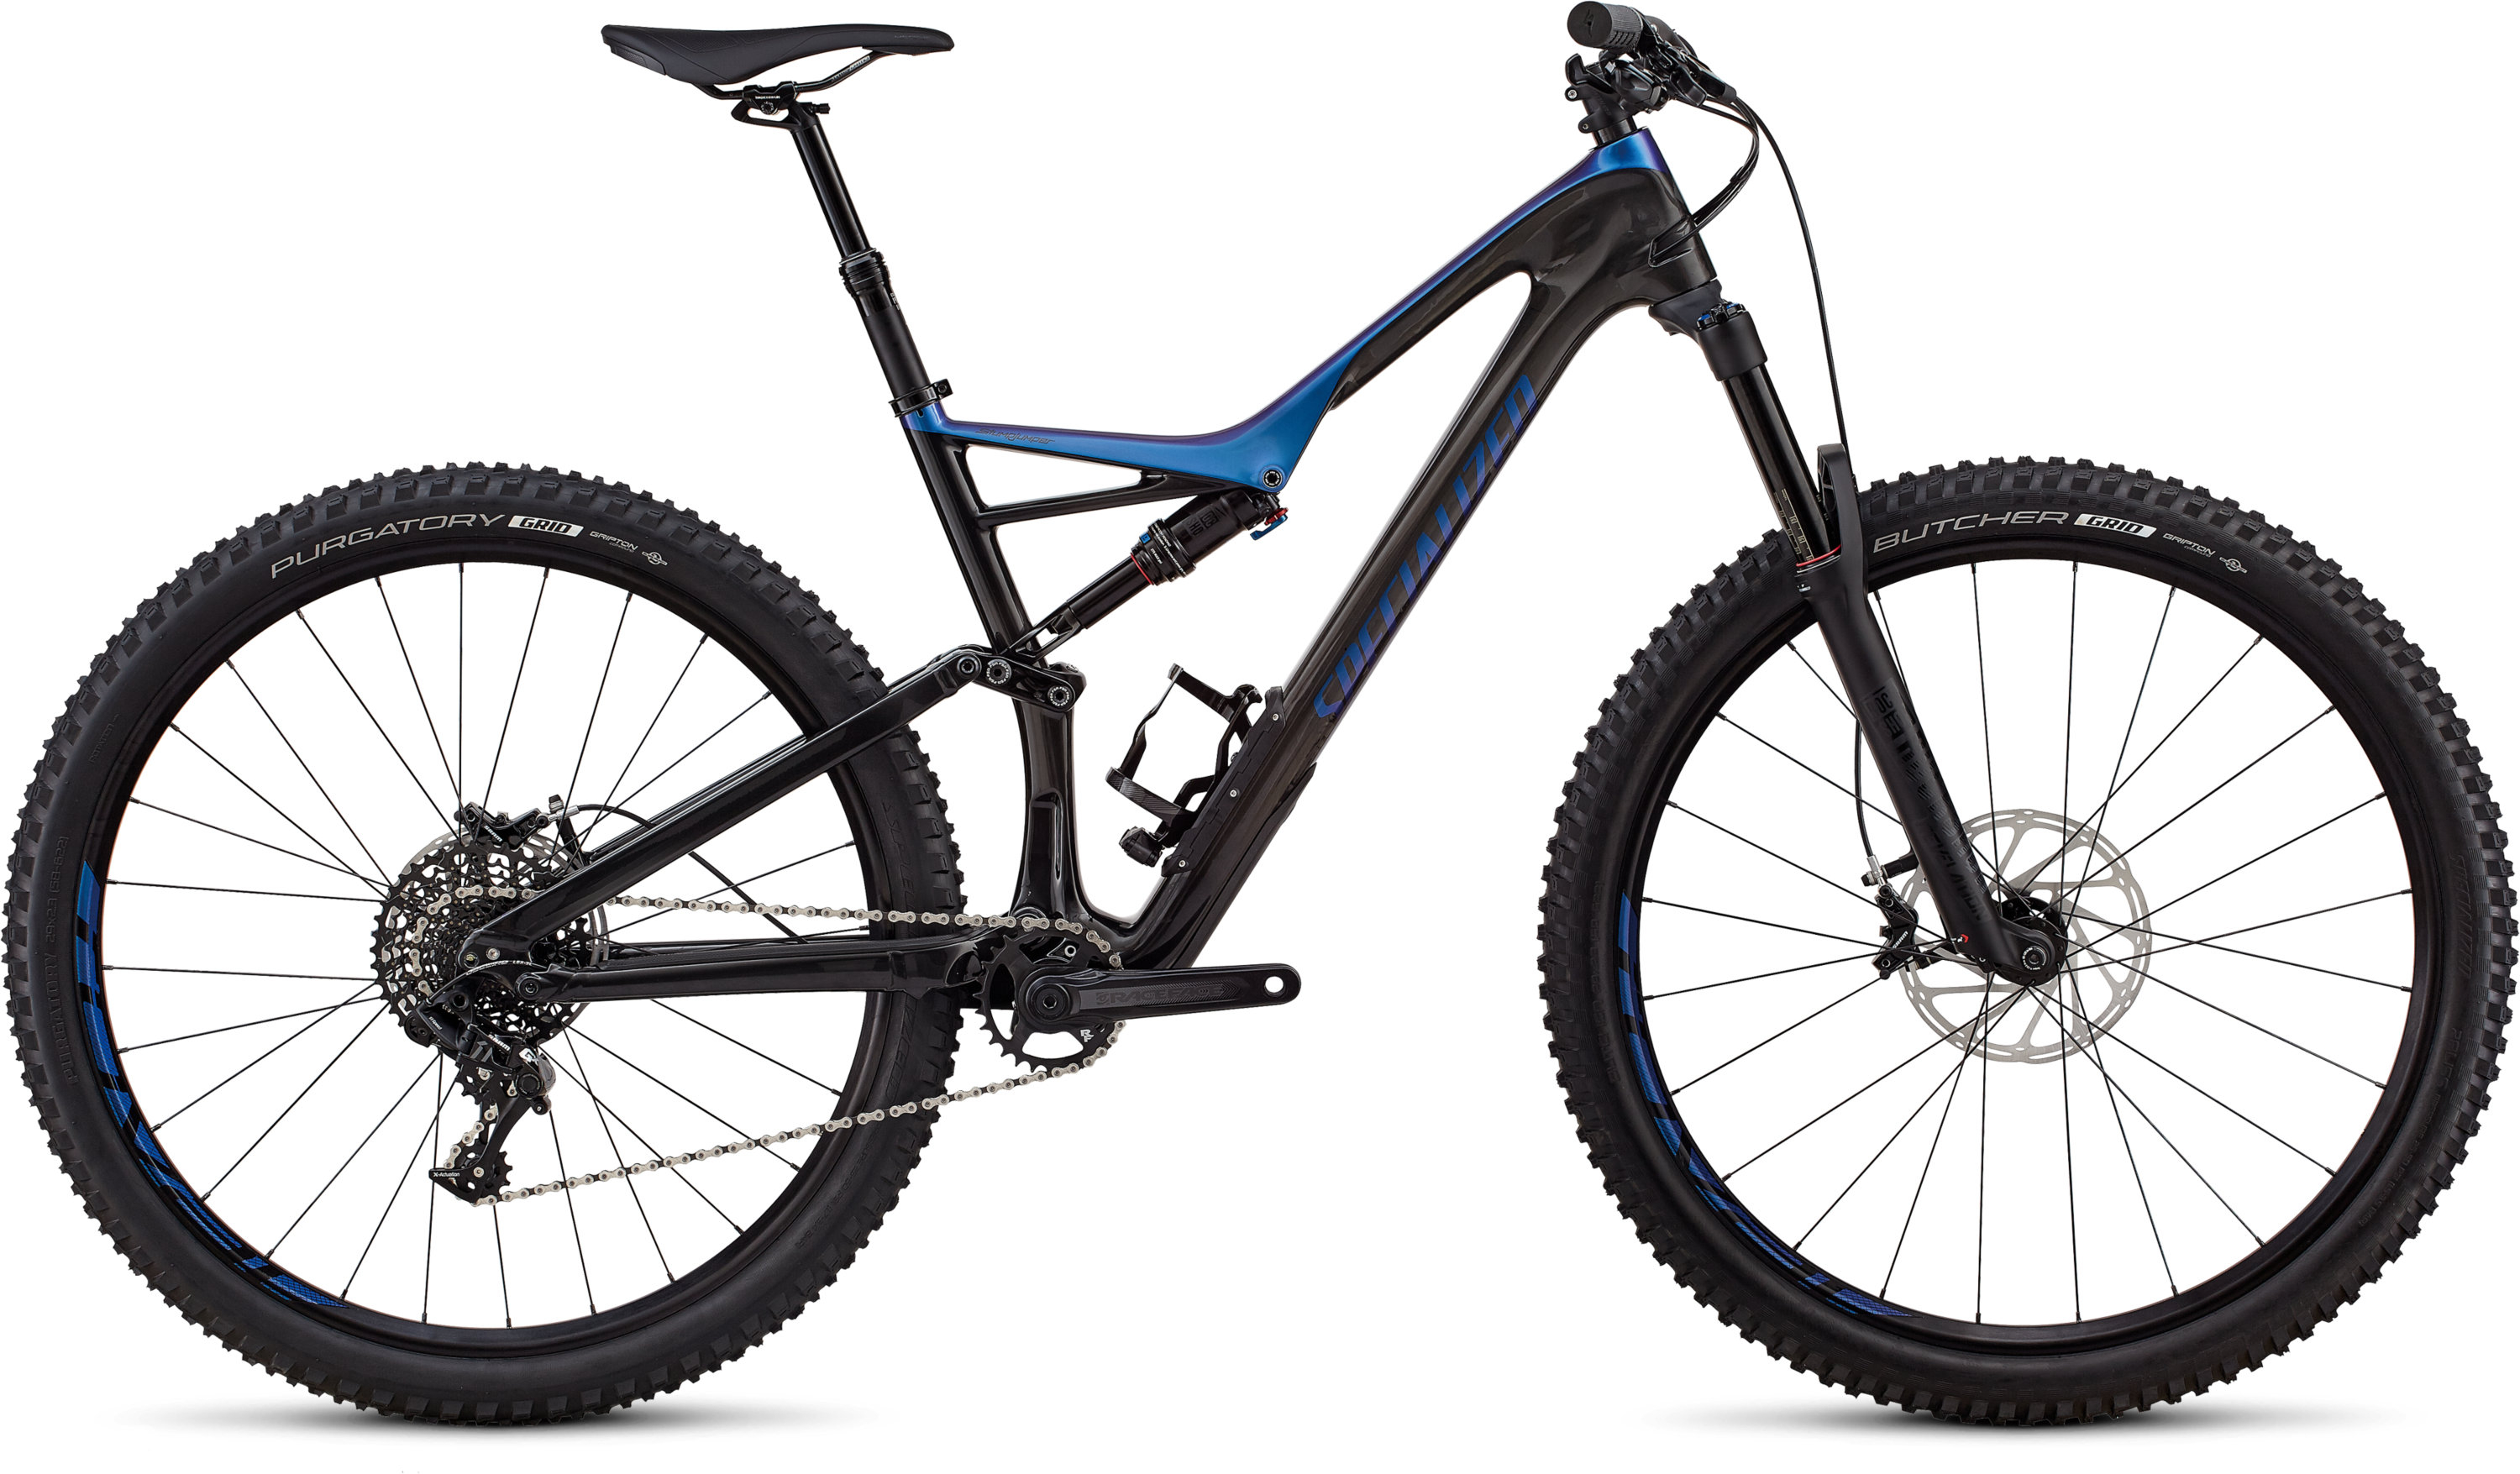 4ac2dc28592 2018 Specialized Stumpjumper Comp Carbon 29/6Fattie - Specialized Concept  Store